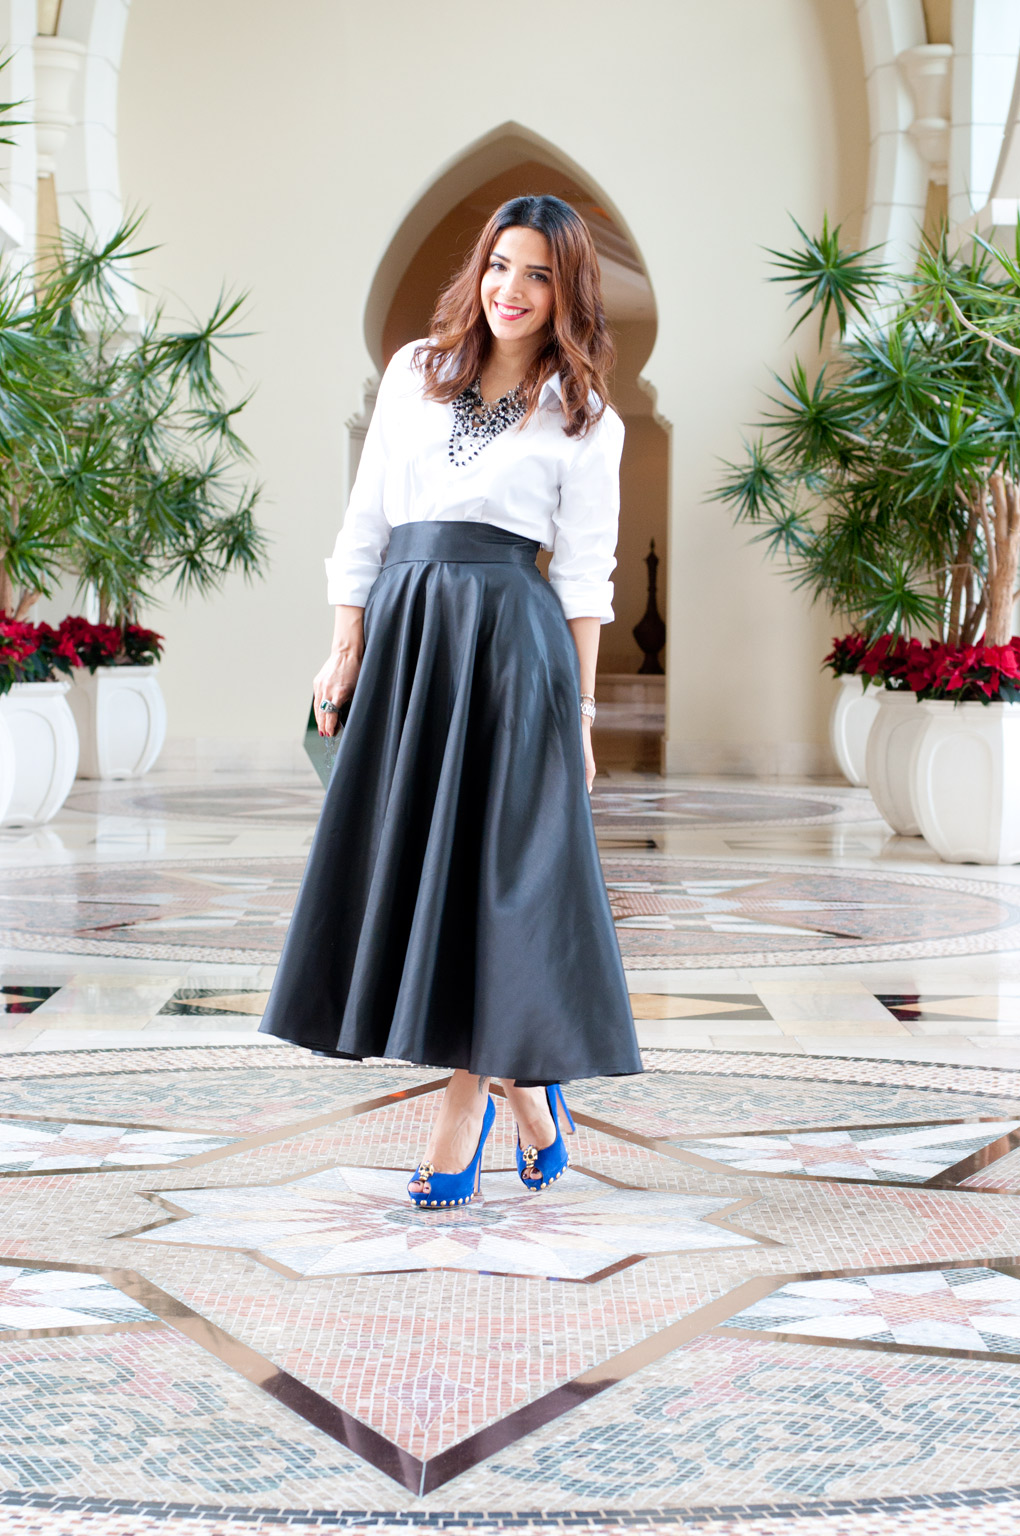 Lyla_Loves_Fashion_frost_midi_skirt_lafshar_mcqueen_SC_4999